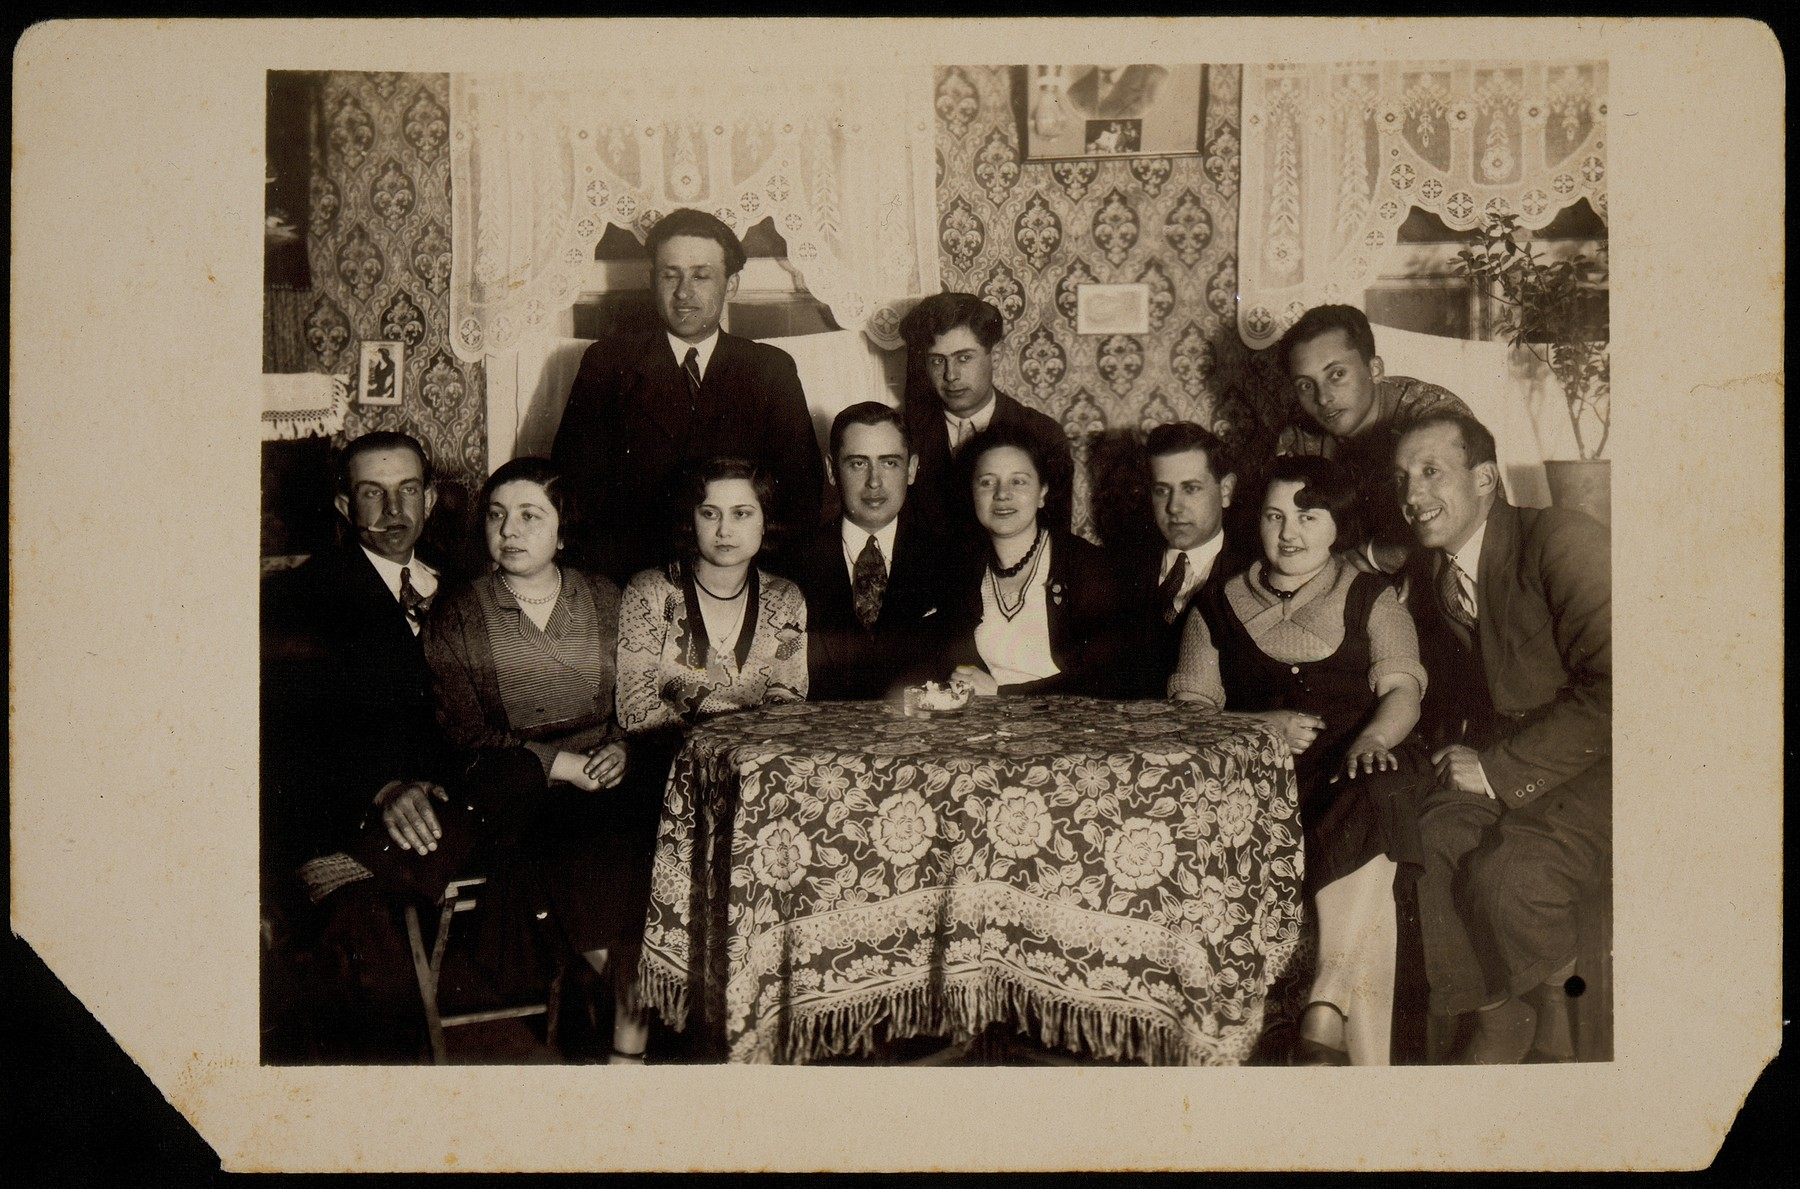 A group of young Jewish men and women sit around a table during a Saturday night party in Eisiskes.  Among those pictured are Eishke Levine (second from the right), Shaul Dubrowicz (sitting in the middle), Motke Kaganowicz (standing on the left) and Shlomo Kiuchefski (sitting on the left).  Most of those pictured were killed during the Holocaust.